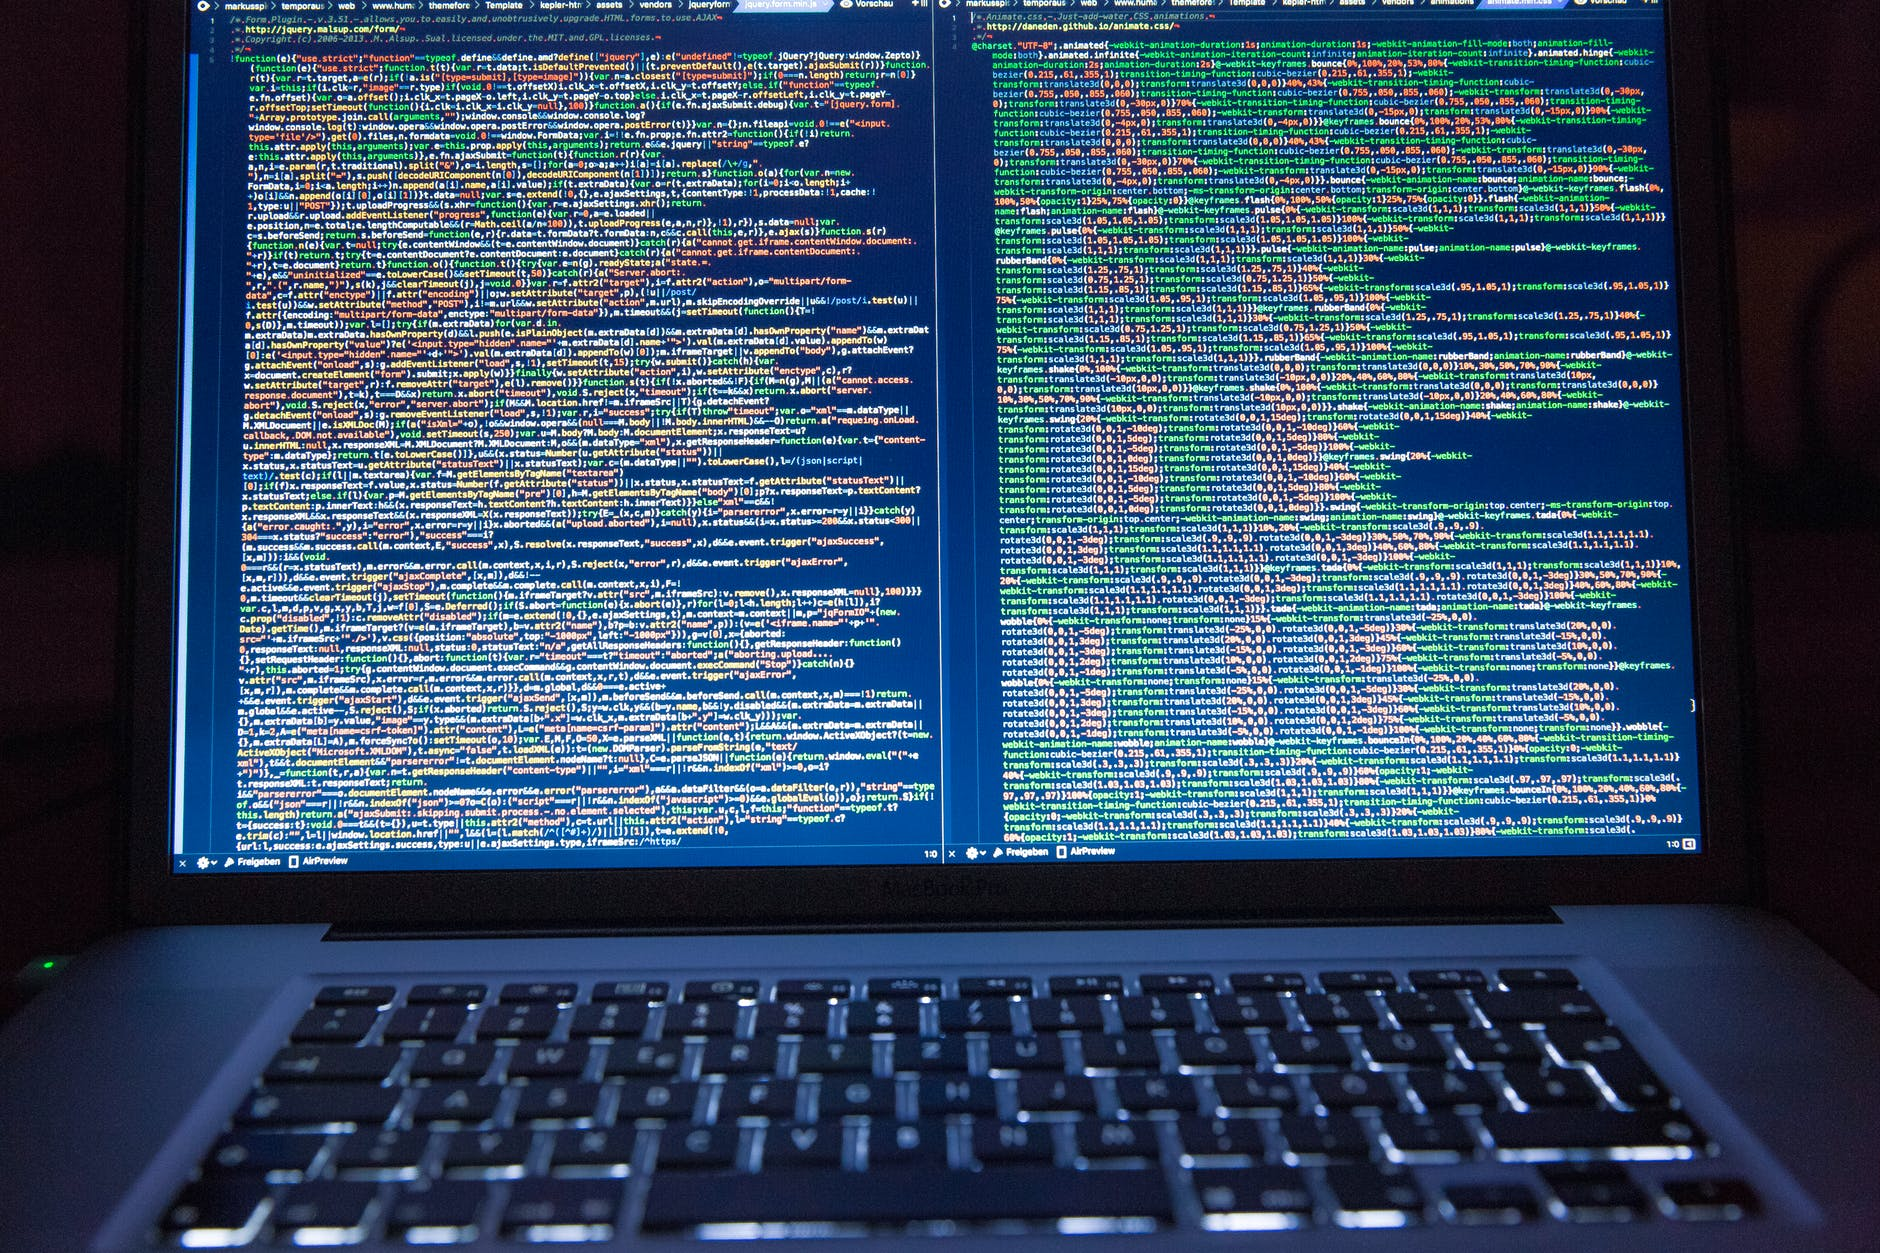 Geek insider, geekinsider, geekinsider. Com,, 3 challenges with learning php programming, news, tech news